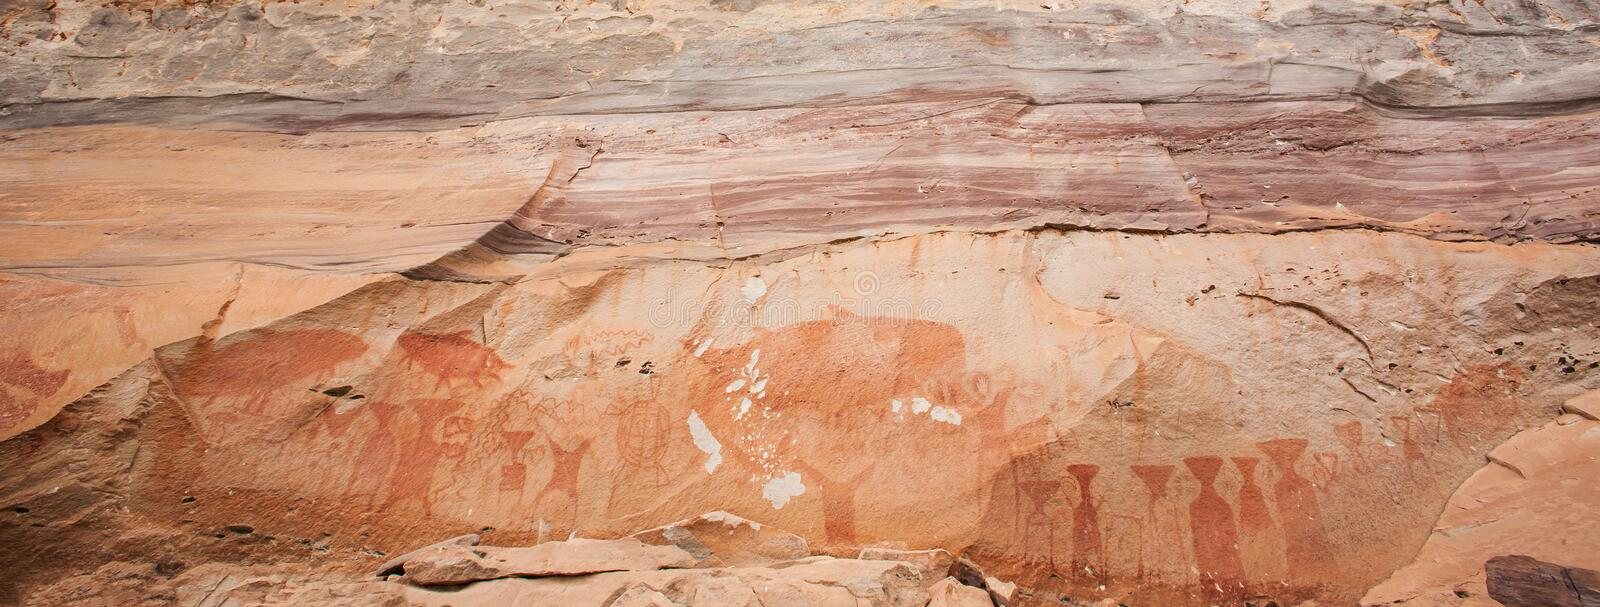 Fantastic ancient paintings on sandstone cliff, 3,000 year-old. Scene in paintings include giant Mekong catfish, elephants, stock image